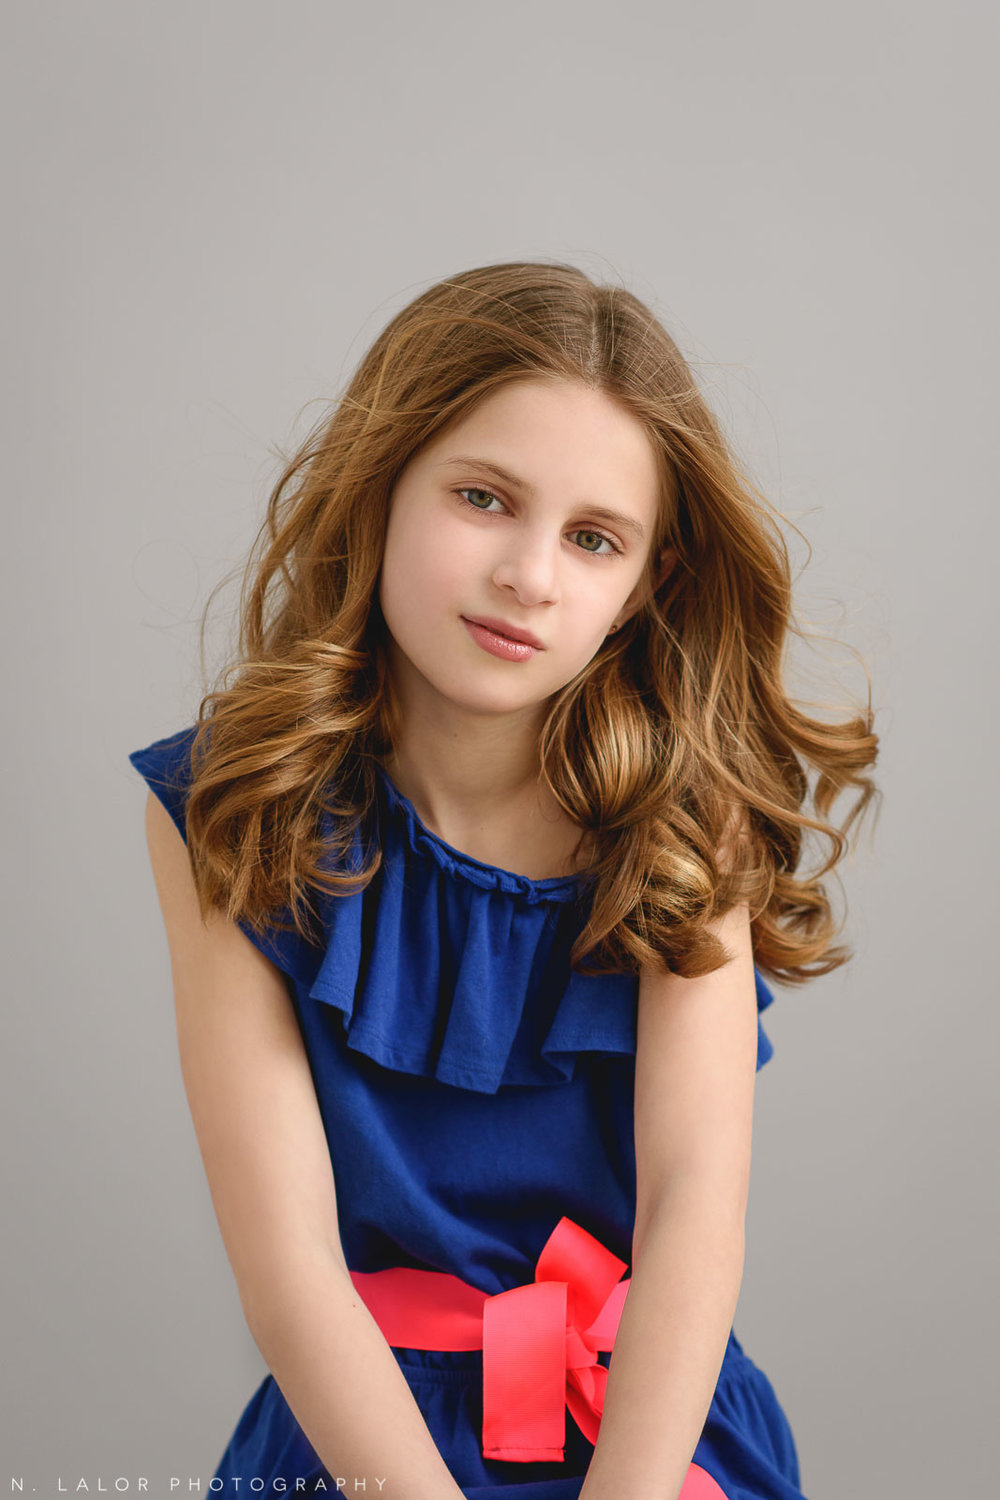 Natural beauty. Tween Studio photoshoot by N. Lalor Photography, located in Greenwich, CT.